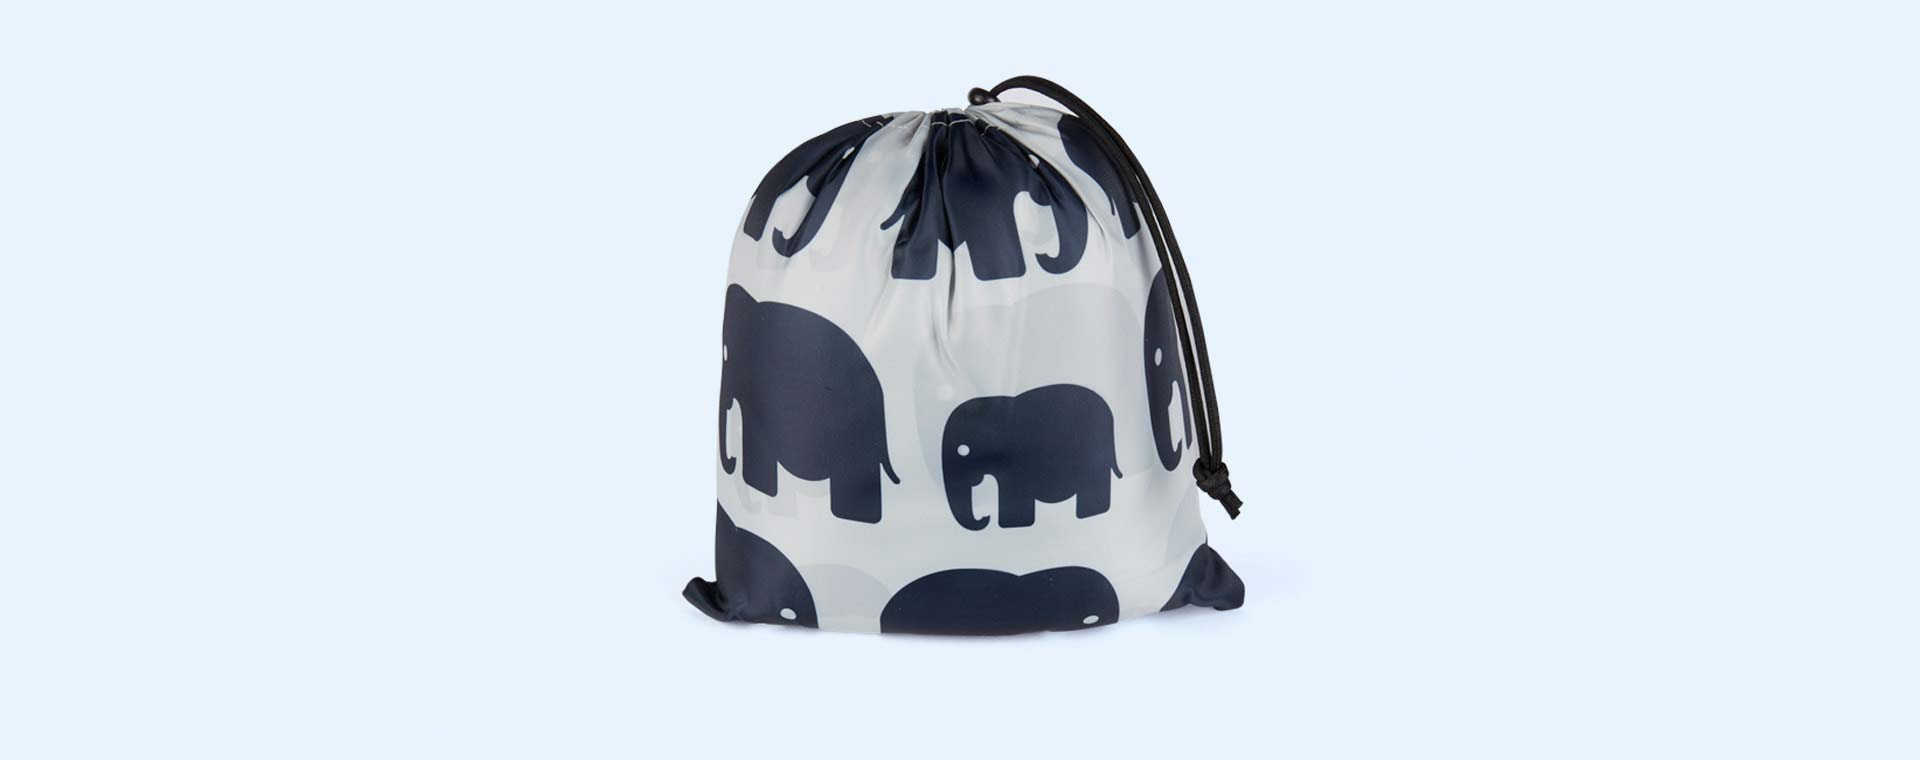 Elephant Bundle Bean Baby Wearing Fleece Lined Cover